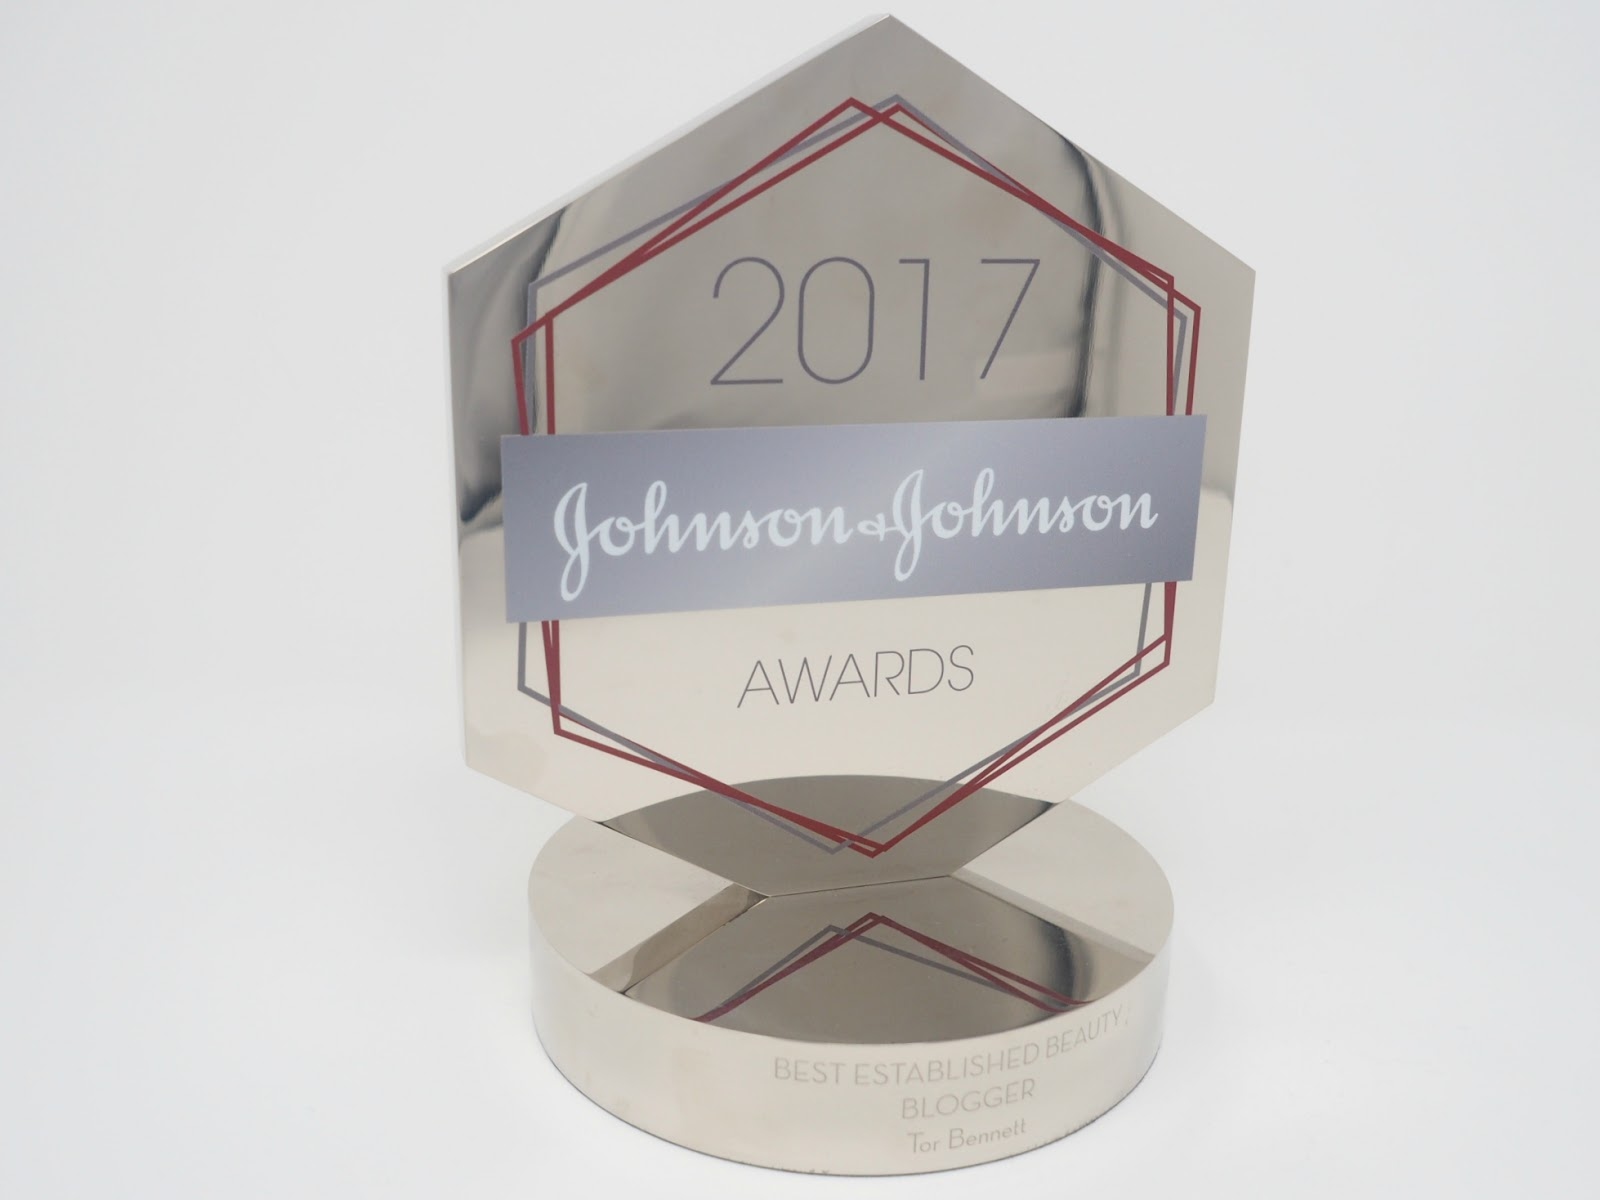 Johnson & Johnson Beauty Awards Trophy Best Established Beauty Blog Winner